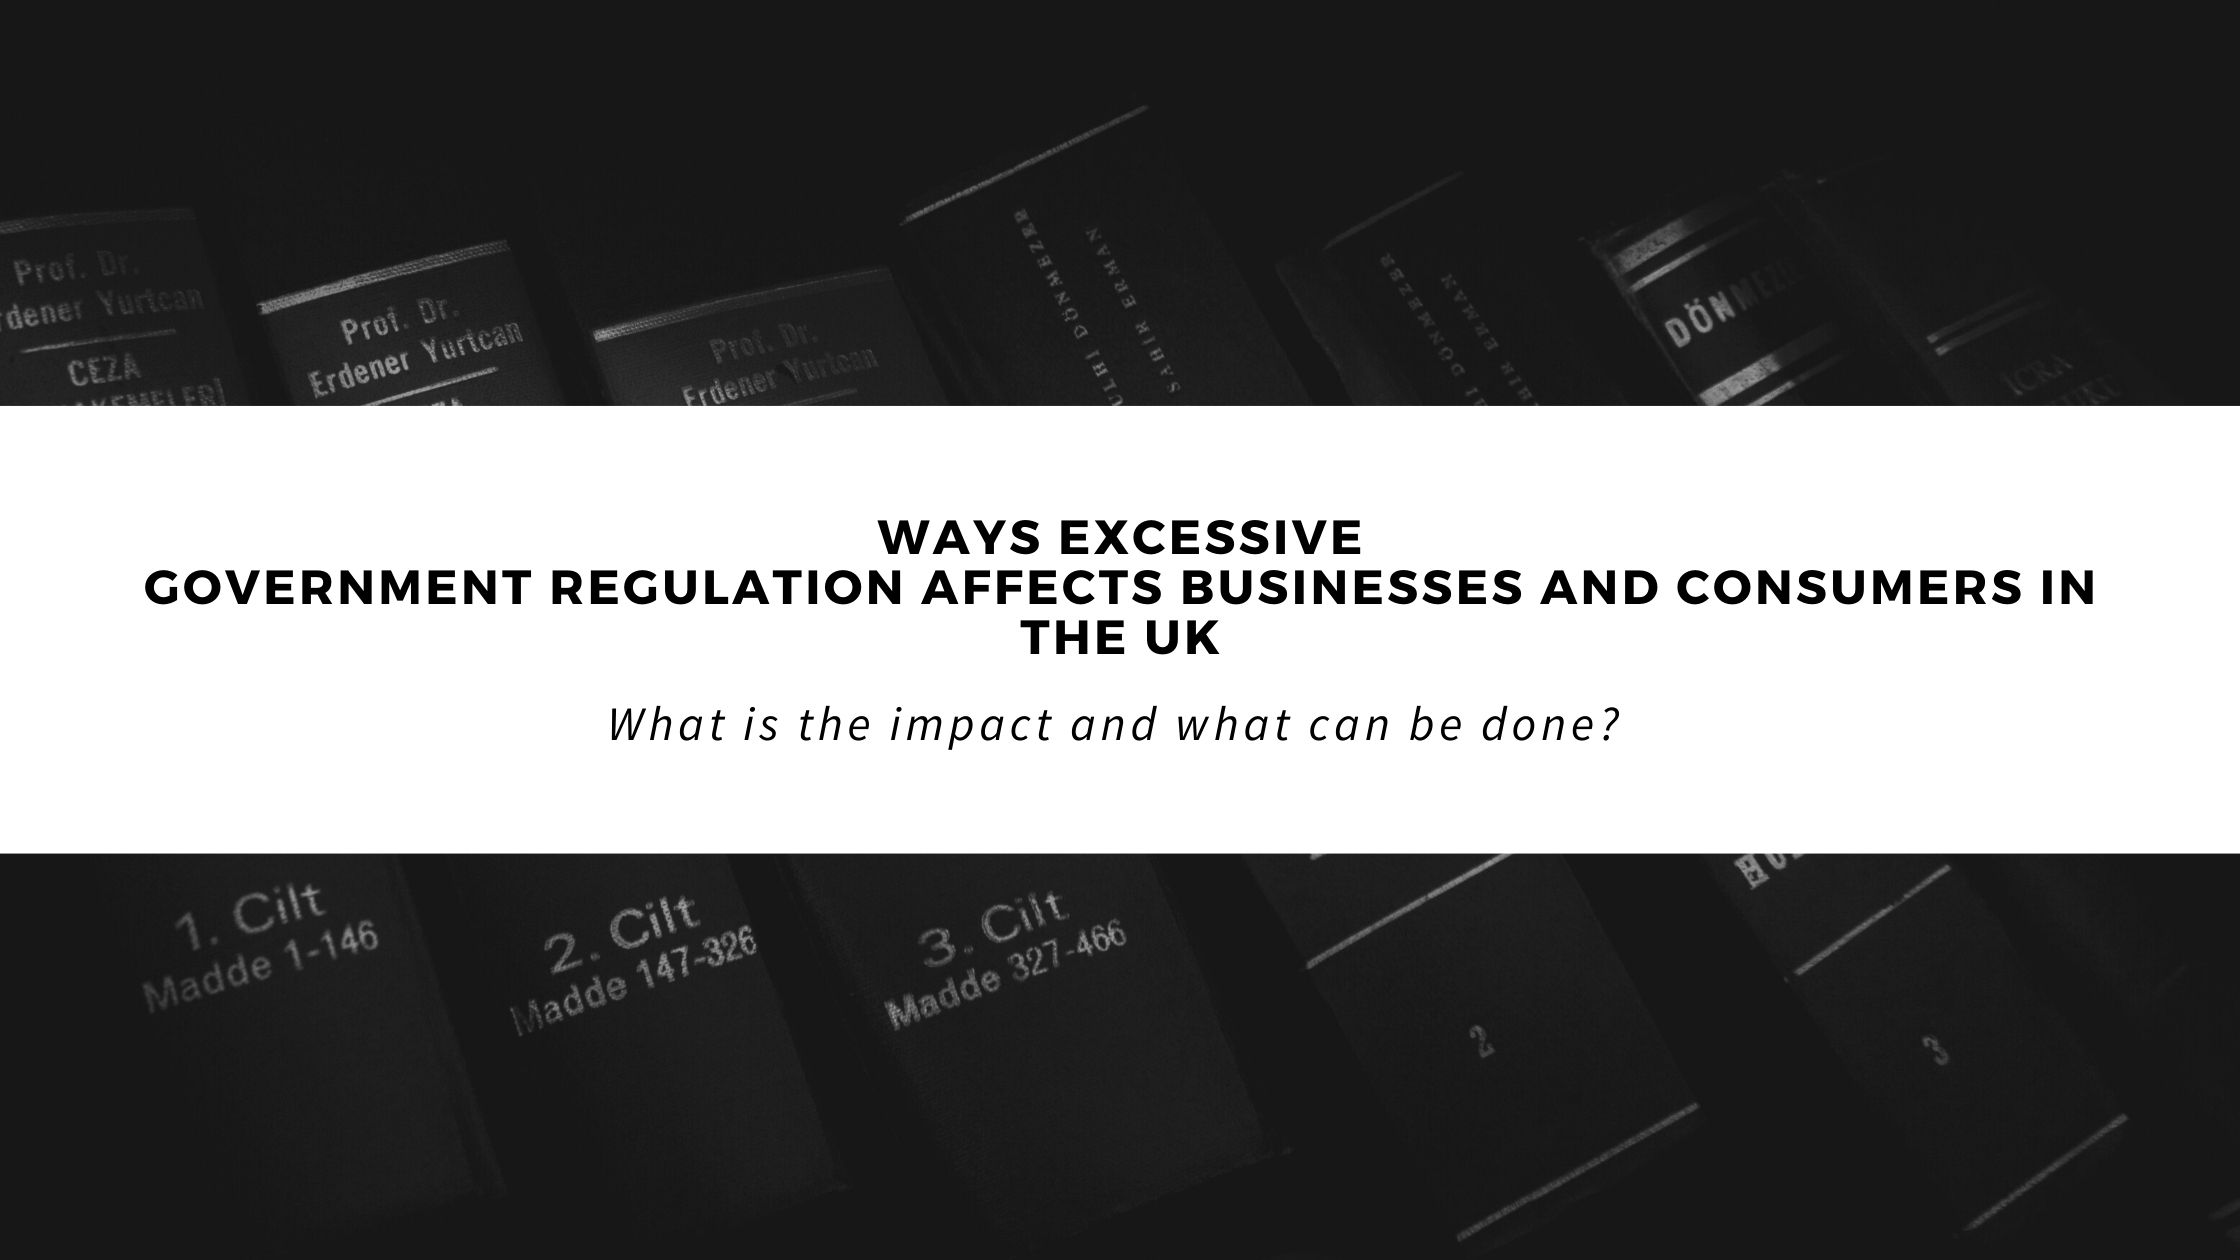 UK-businesses-are-impacted-by-excessive-government-regulation-for-business-operations